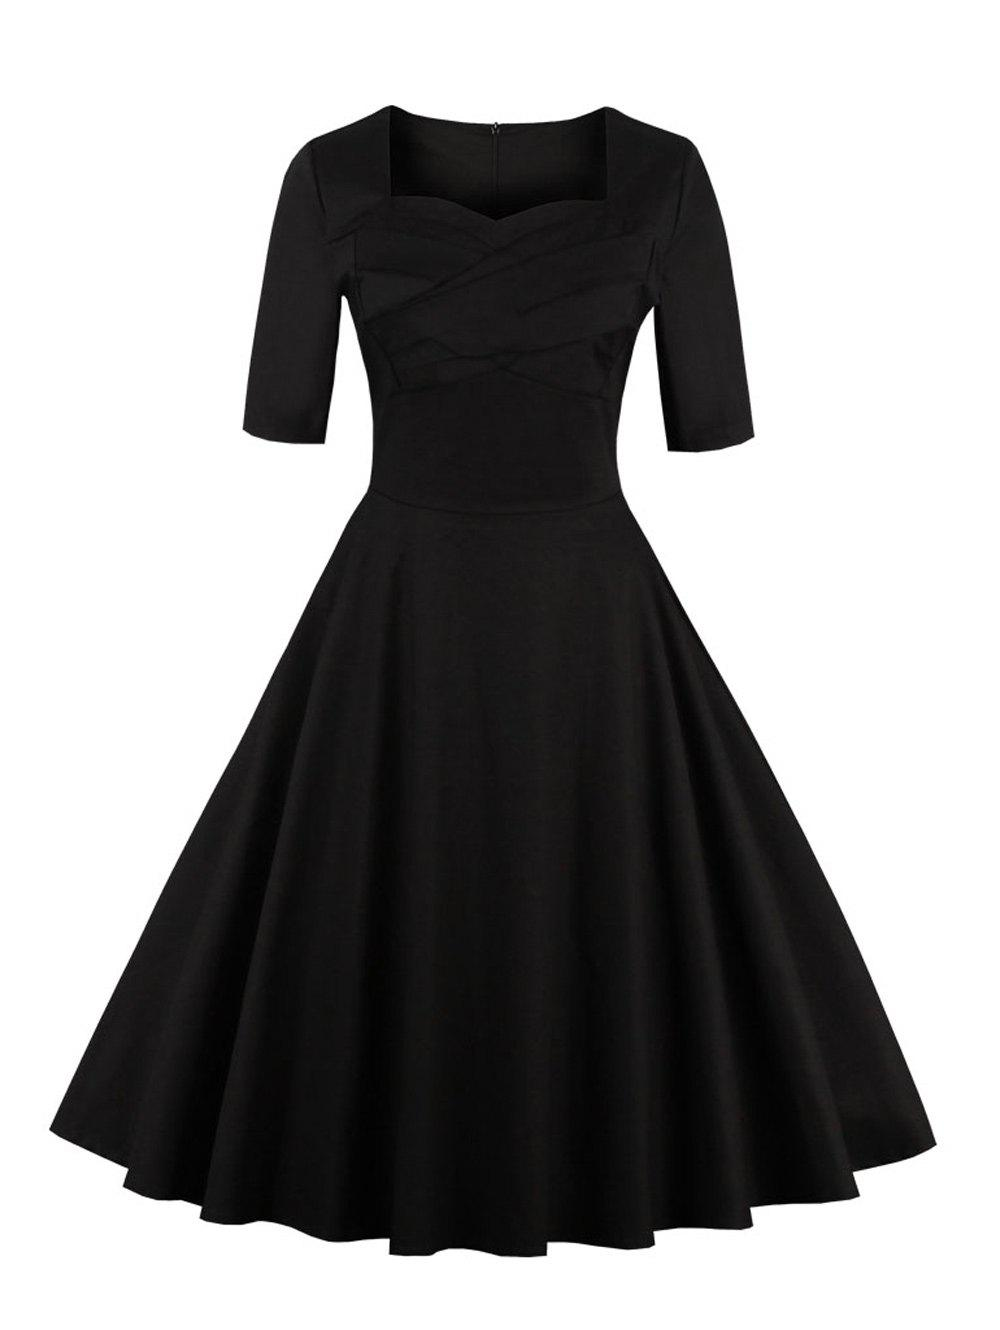 Hot Vintage Sweetheart Neck Flare Pin Up Dress